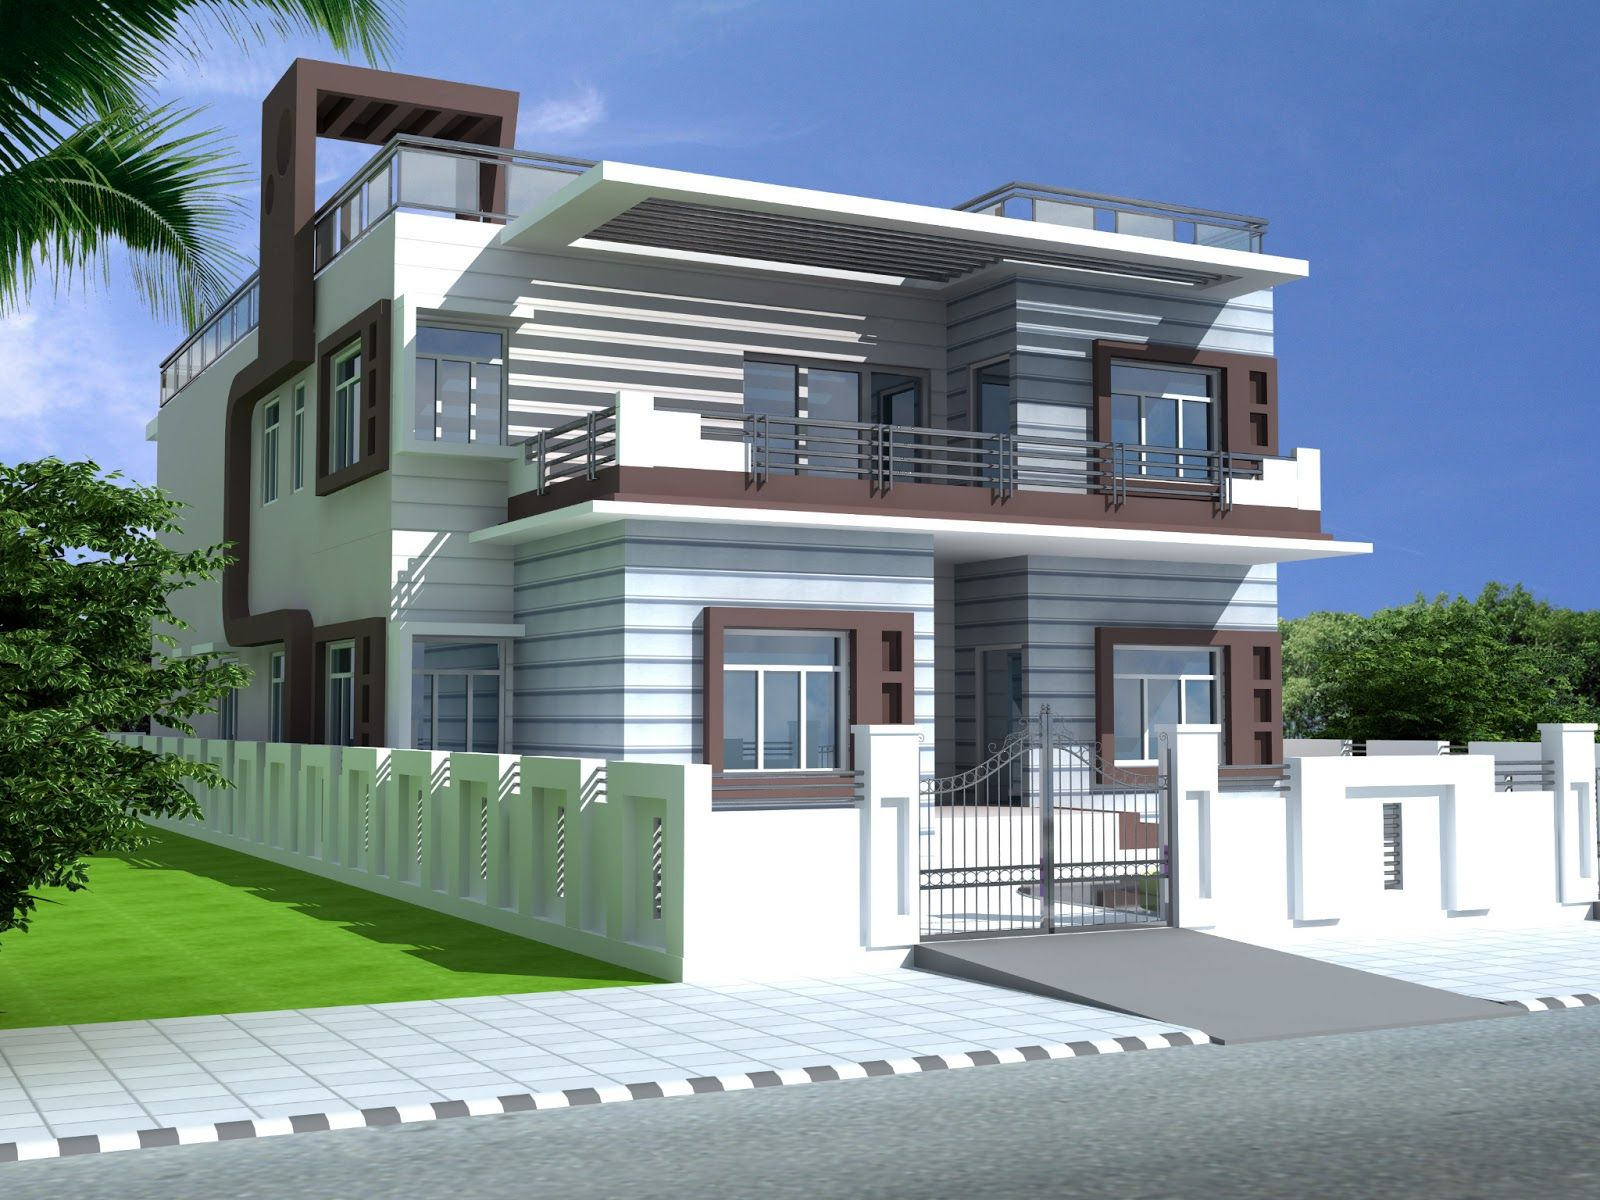 6 bedrooms duplex house design in 390m2 13m x 30m for Plan of duplex building